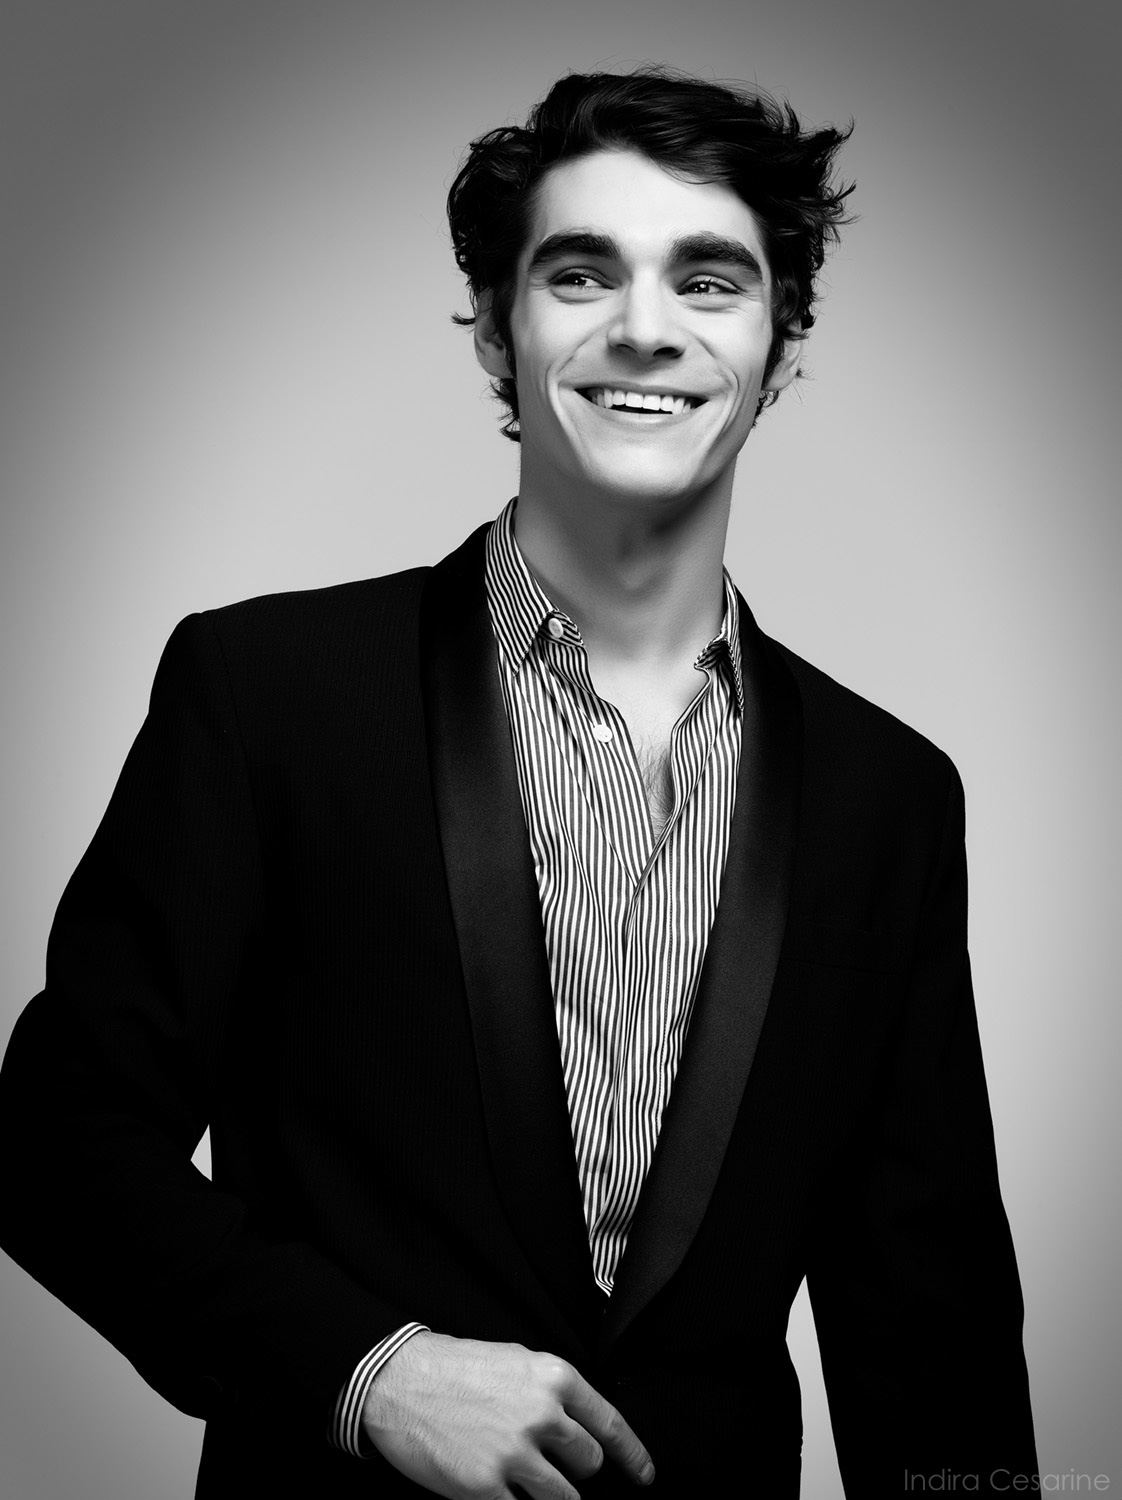 RJ-Mitte-Photography-by-Indira-Cesarine-002.jpg